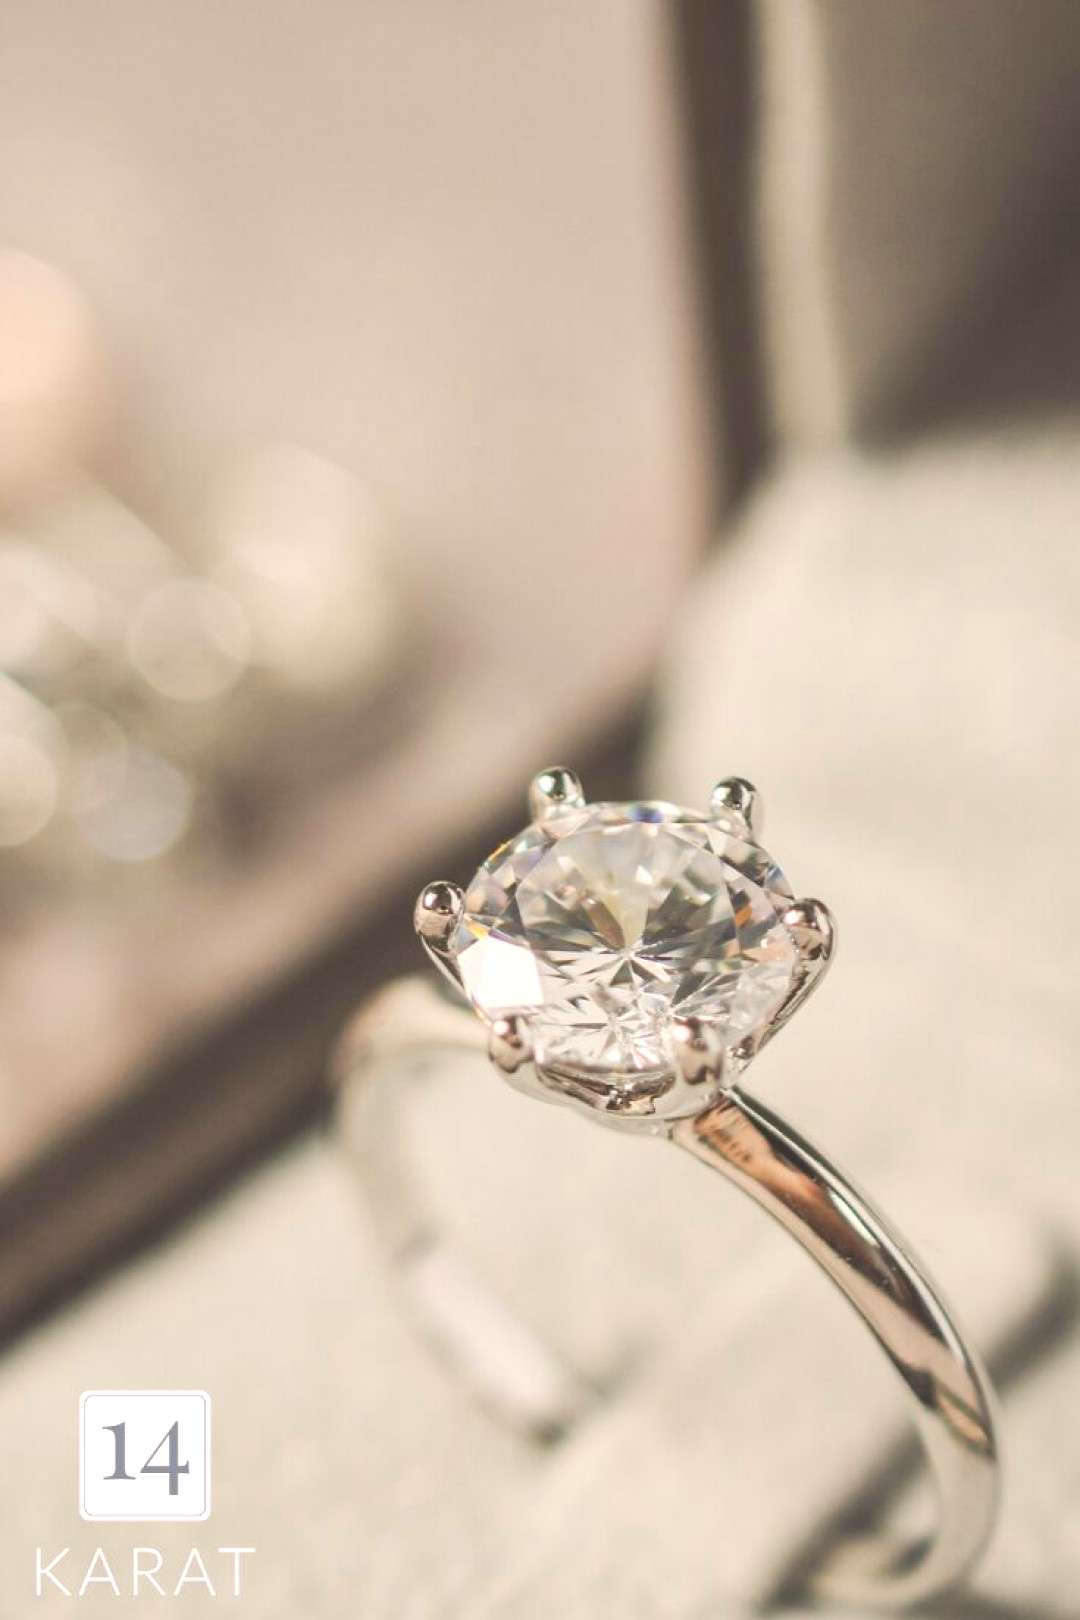 THE HISTORY AND MEANING BEHIND APRIL'S BIRTHSTONE Do you know what April's birthstone is? You c